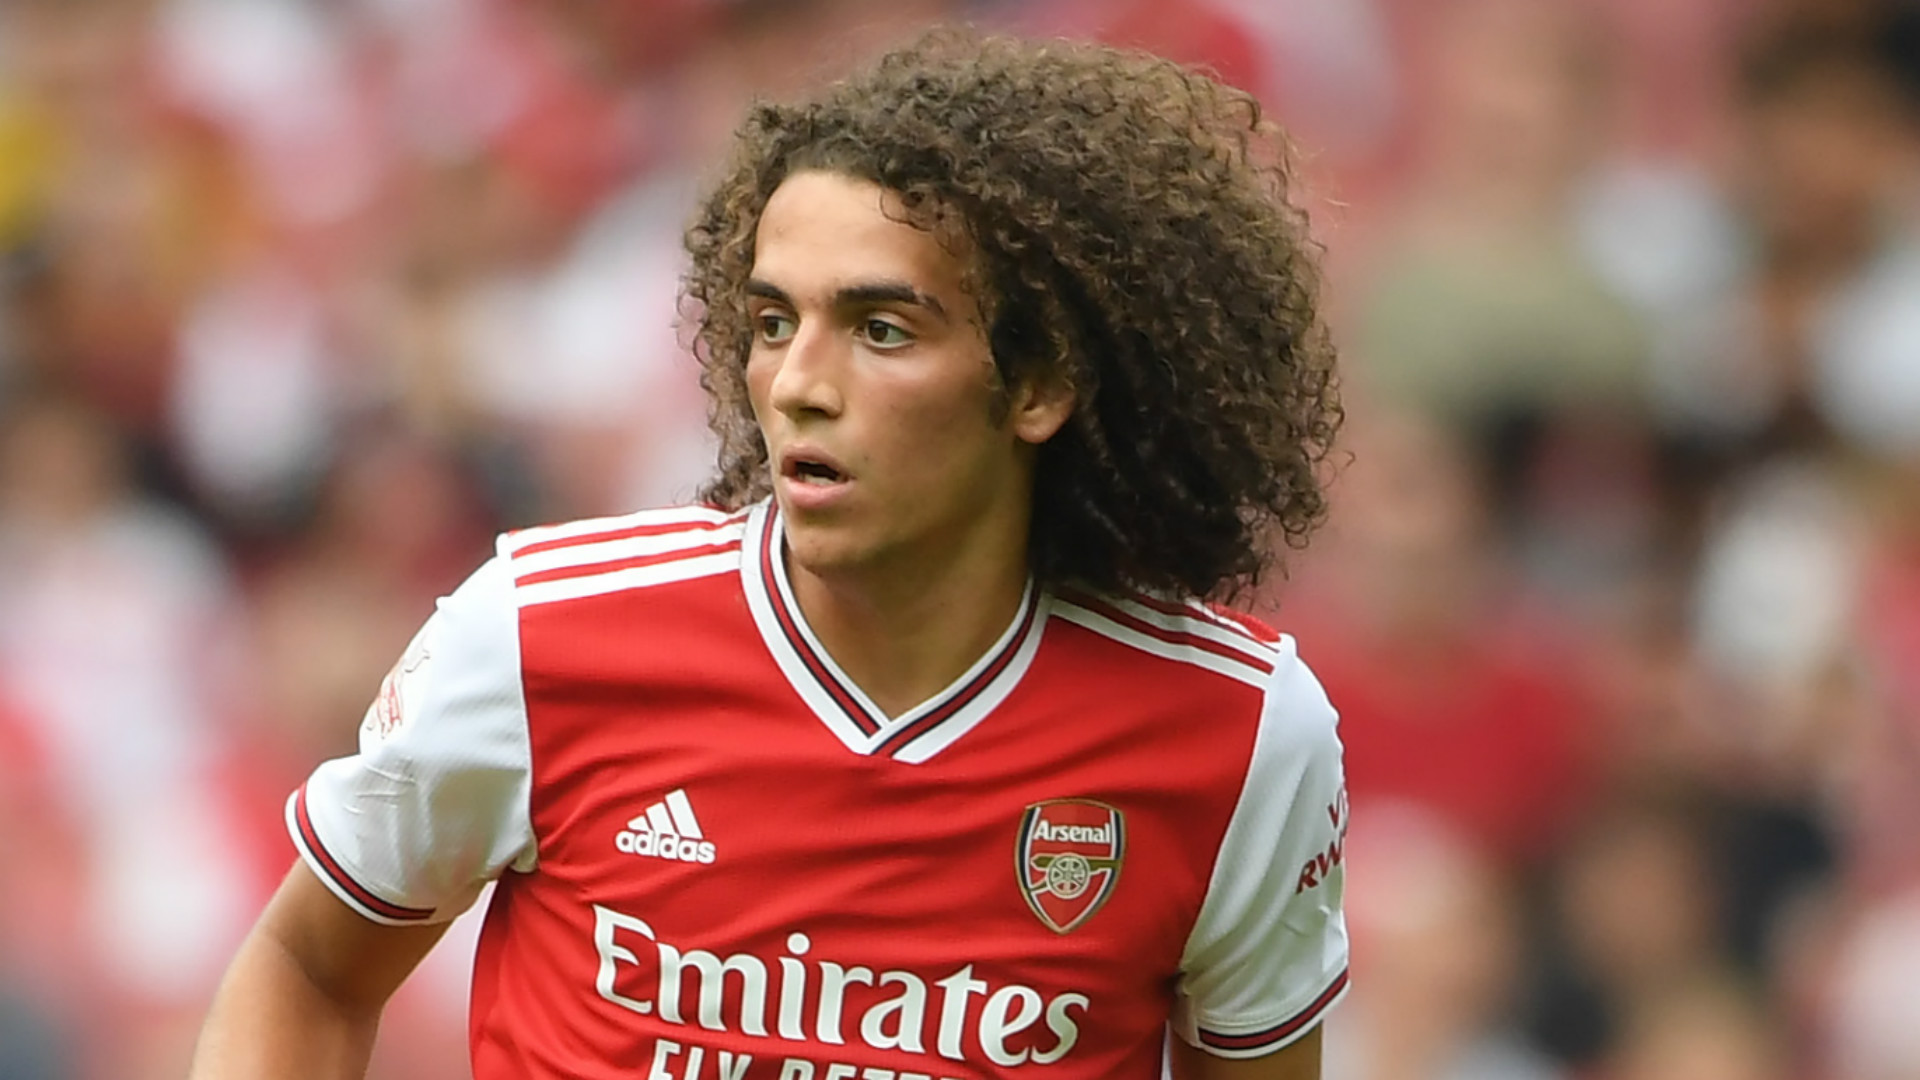 'Guendouzi has to mind his temper' - Arsenal star guilty of getting nervous & losing focus, says Gilberto